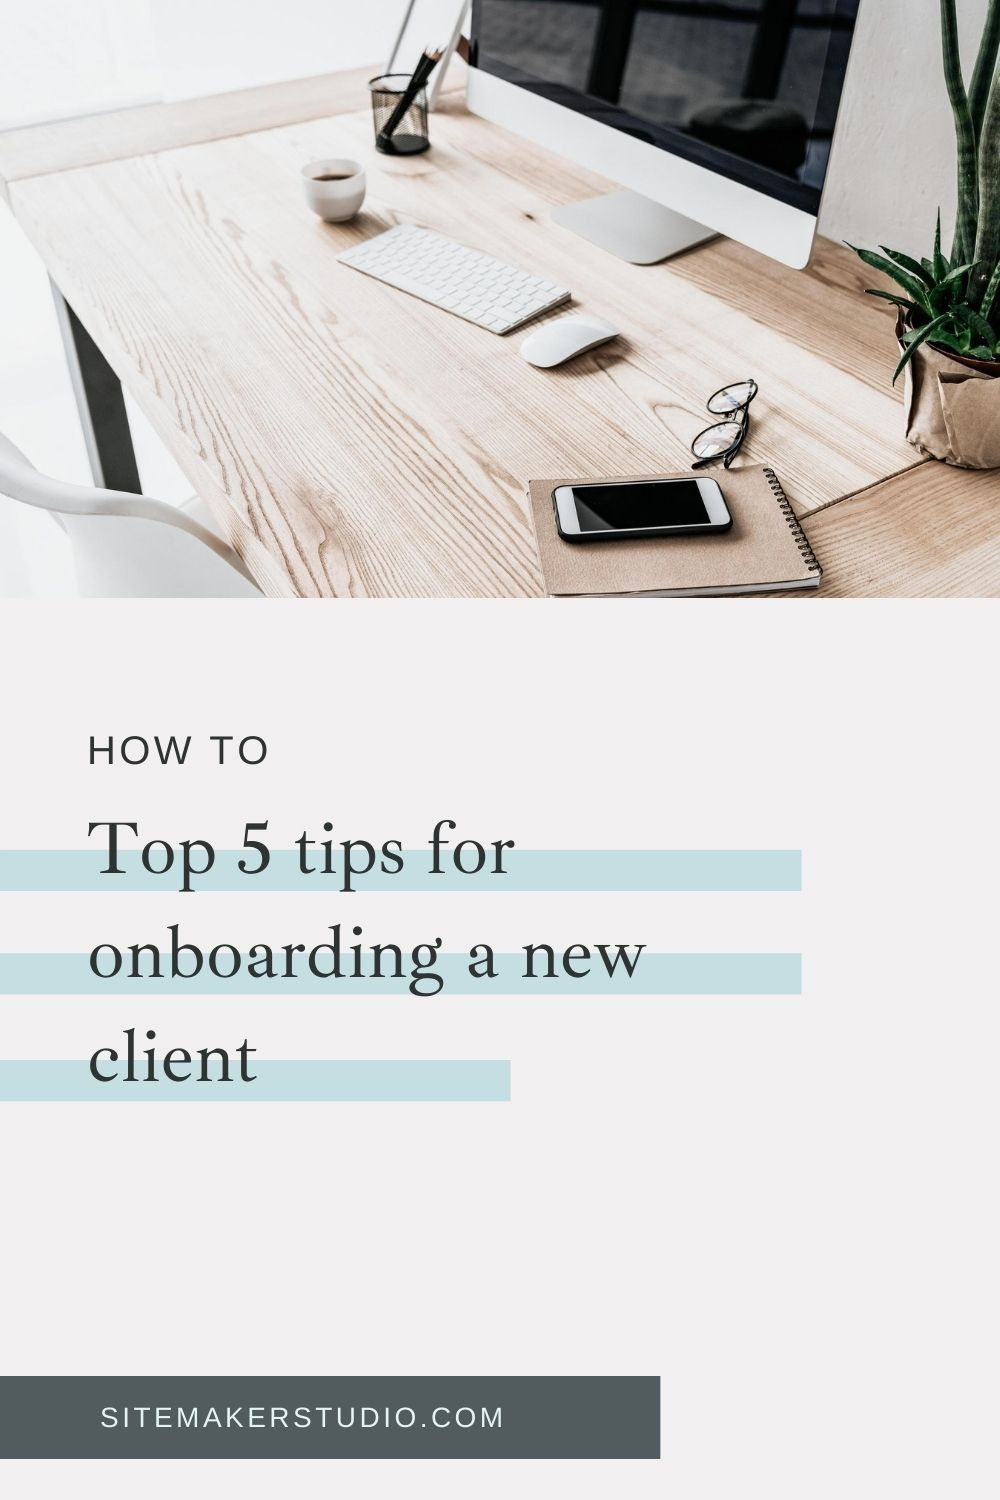 5 tips for onboarding new client